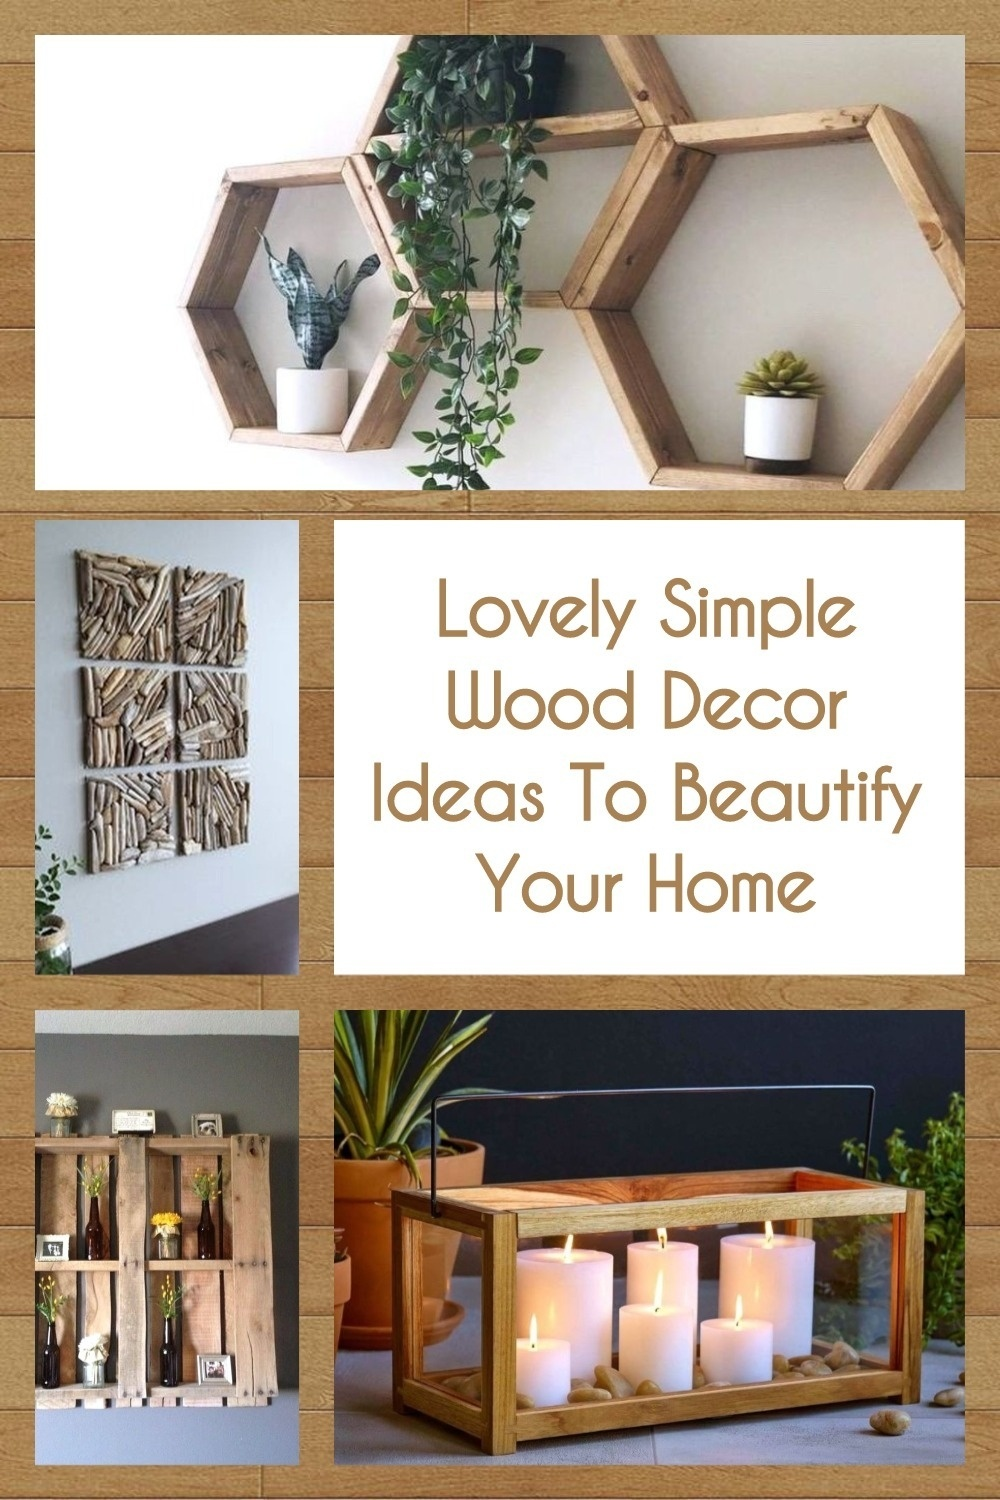 Lovely Simple Wood Decor Ideas To Beautify Your Home